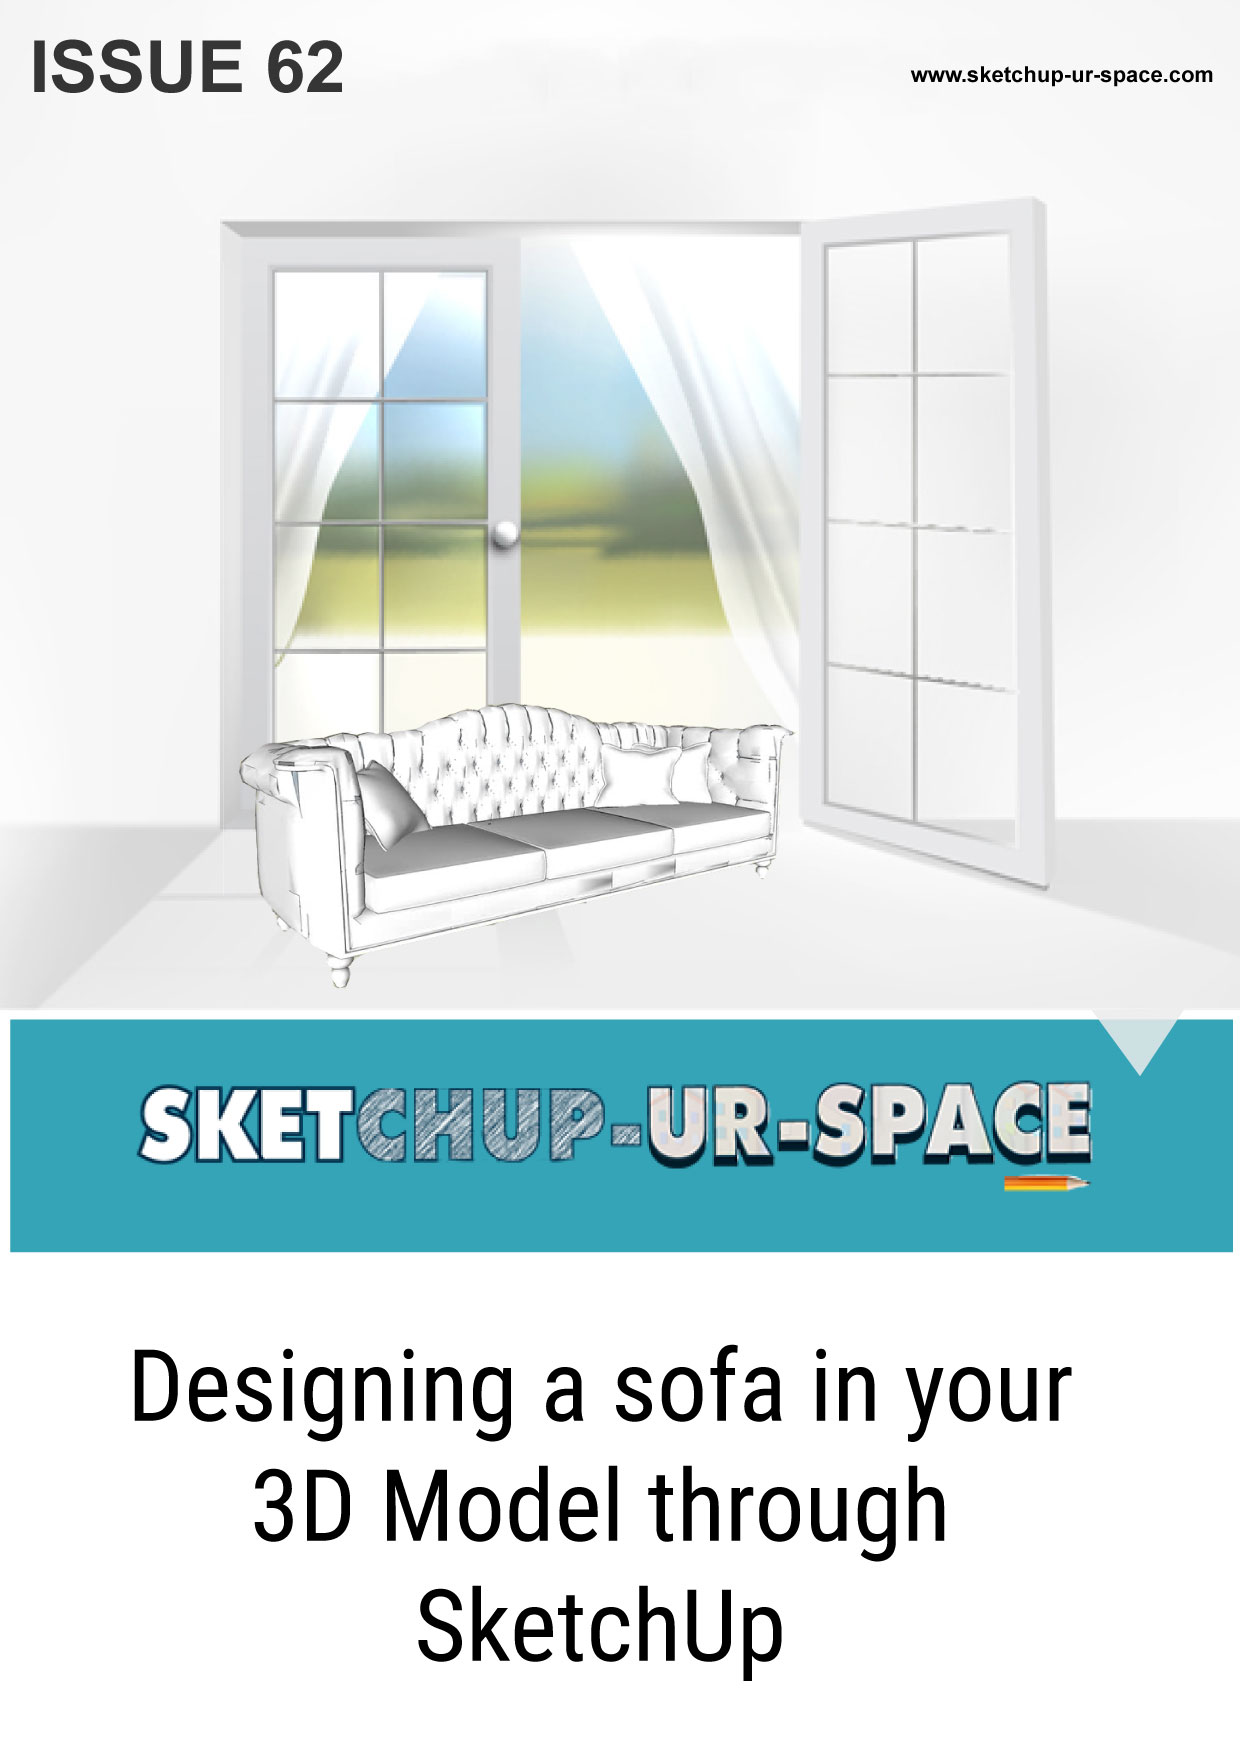 Sketchup-ur-space Magazine - November 2020